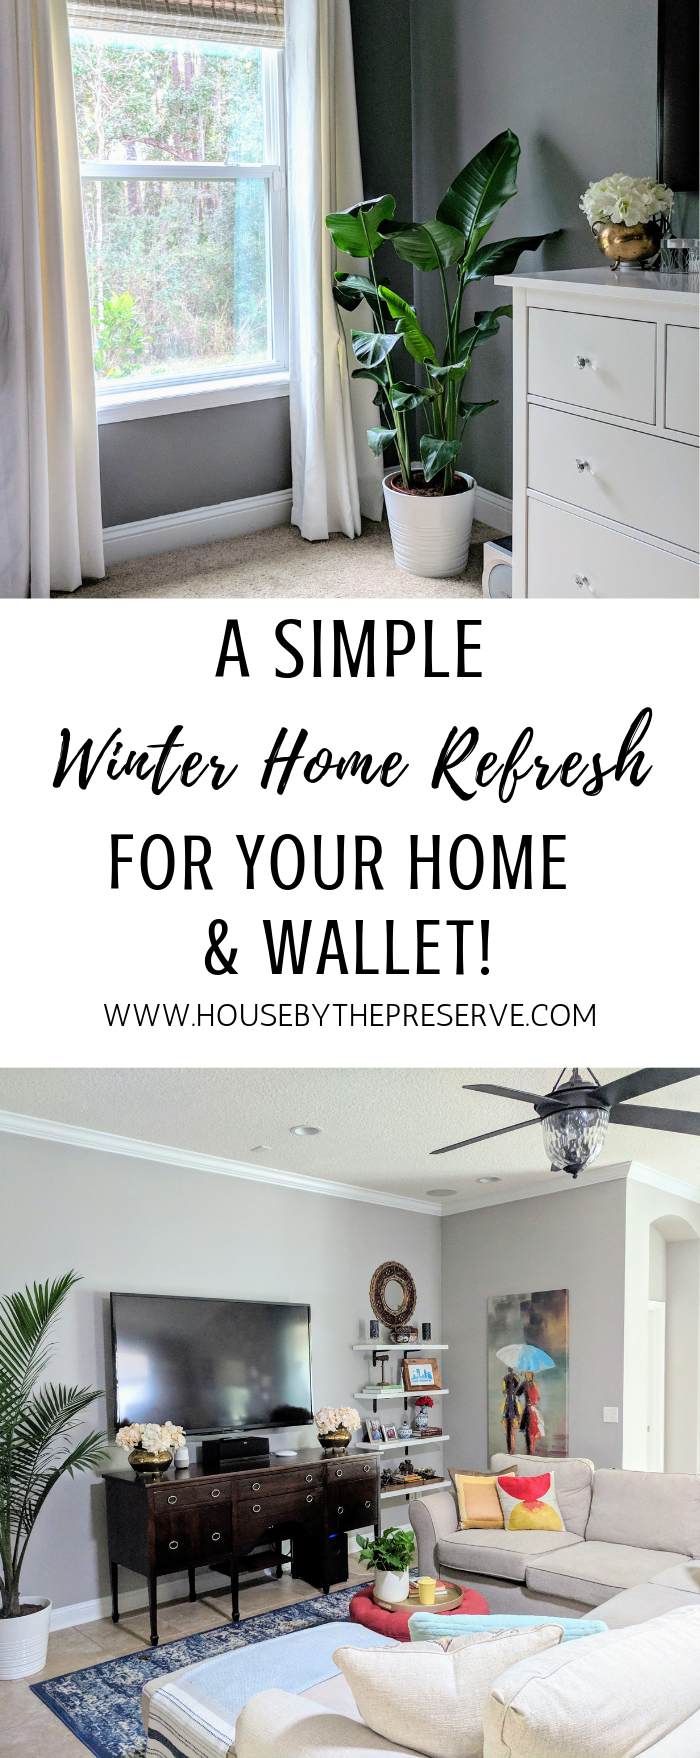 A Simple Winter Home Refresh for your Home & Wallet - House by the Preserve.png